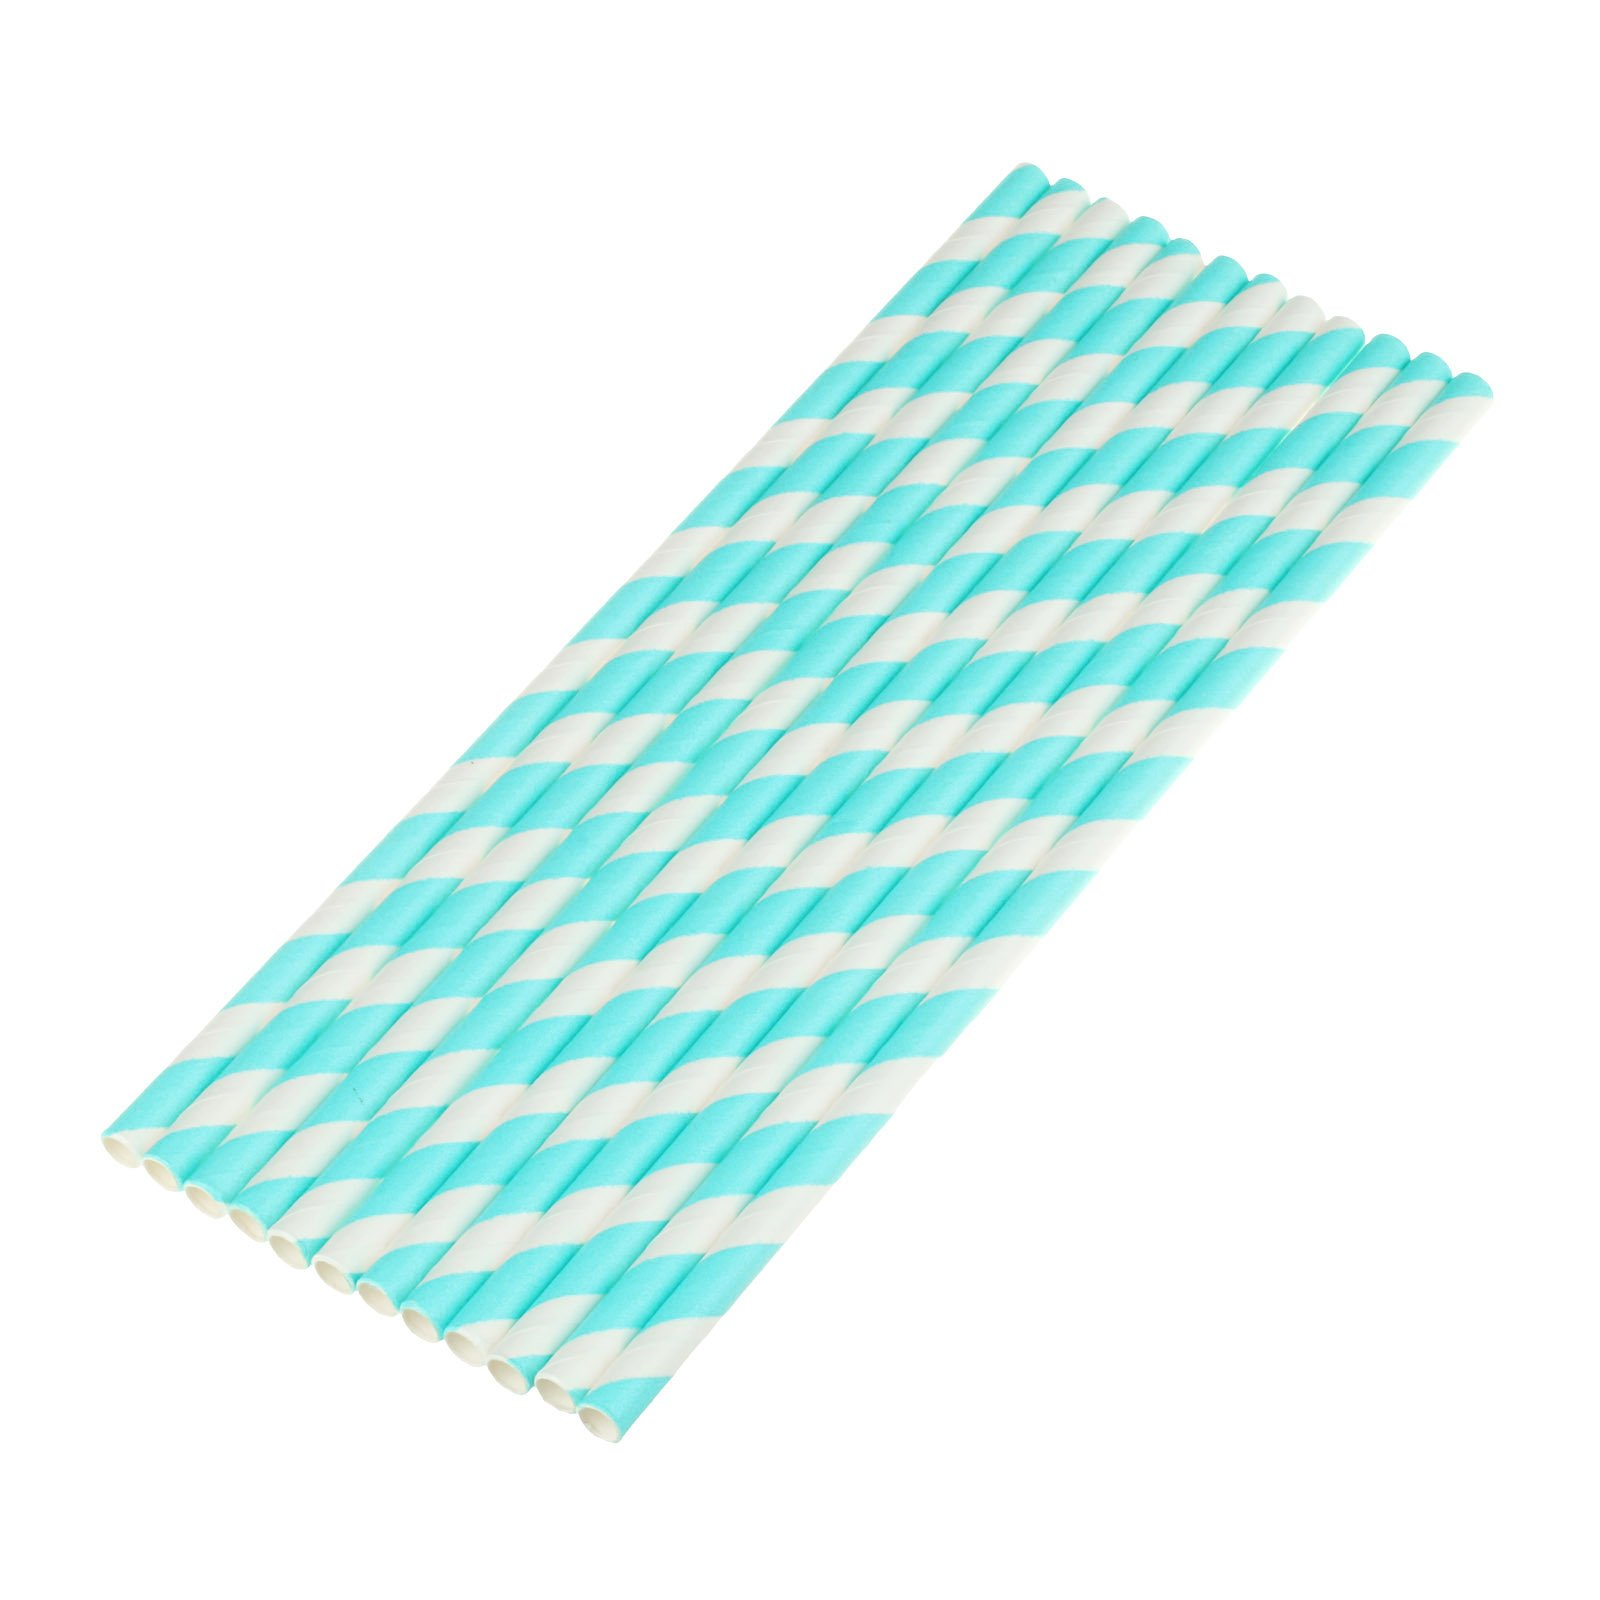 vLoveLife 25pcs Turquoise & White Biodegradable Paper Straws Striped Drinking Straws for Valentine's Day Wedding Birthday Party Celebrations Baby Shower Drinking Decoration Favors Supplies